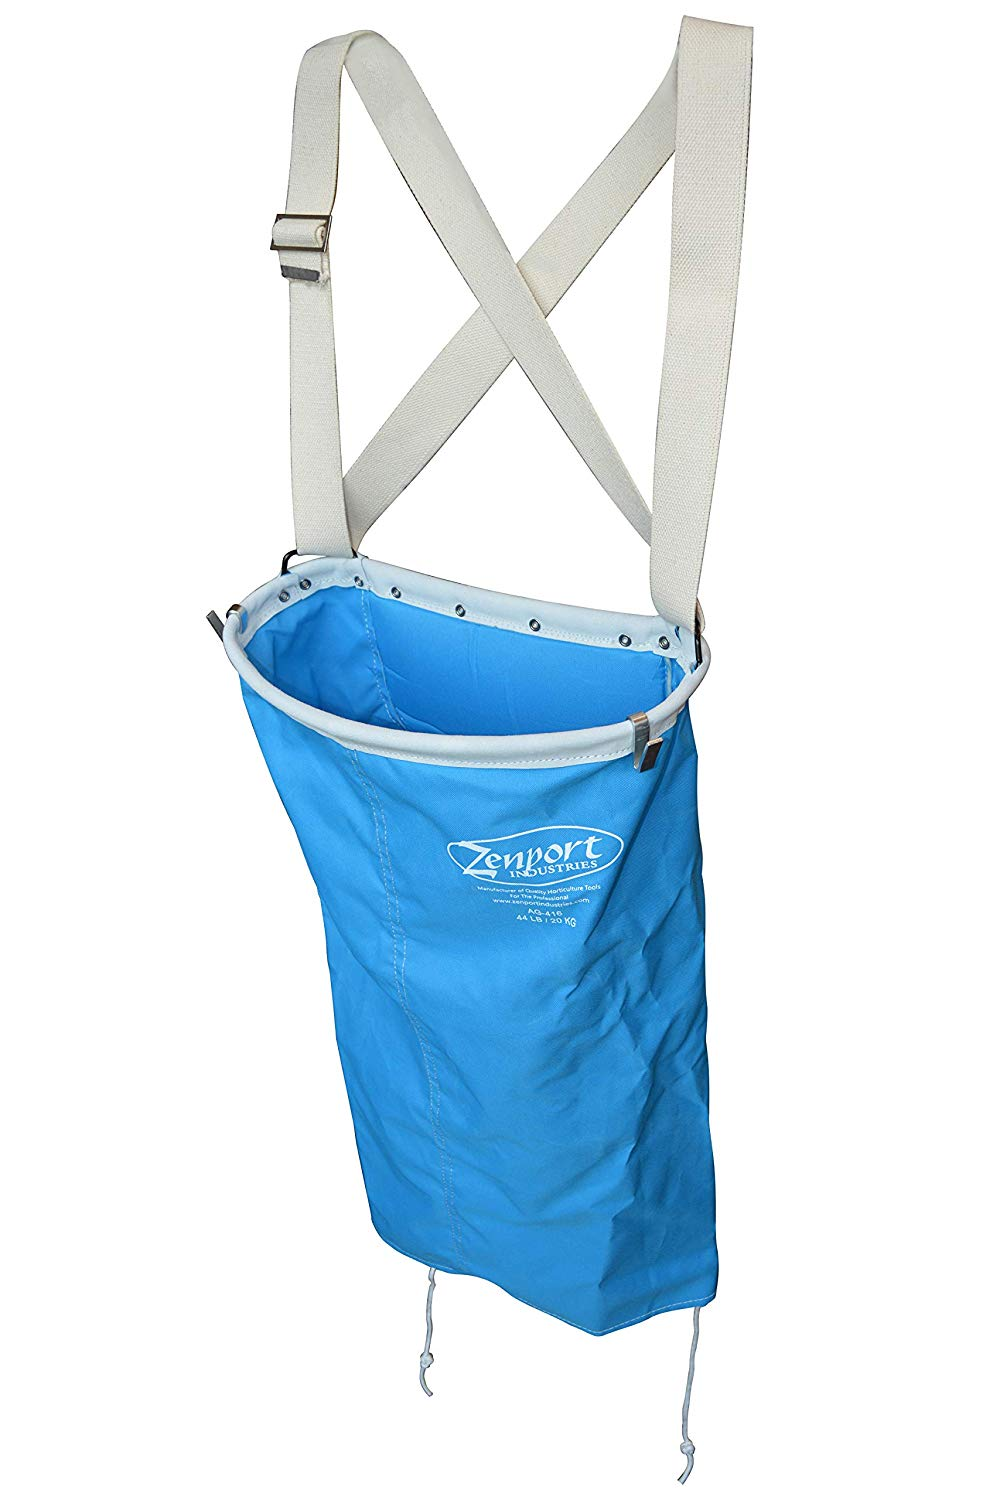 Zenport Picking Bag AG416 AgriKon 44-Pound Wire Rim Soft Shell Harvest Fruit, Pear/Apple Picking Bag